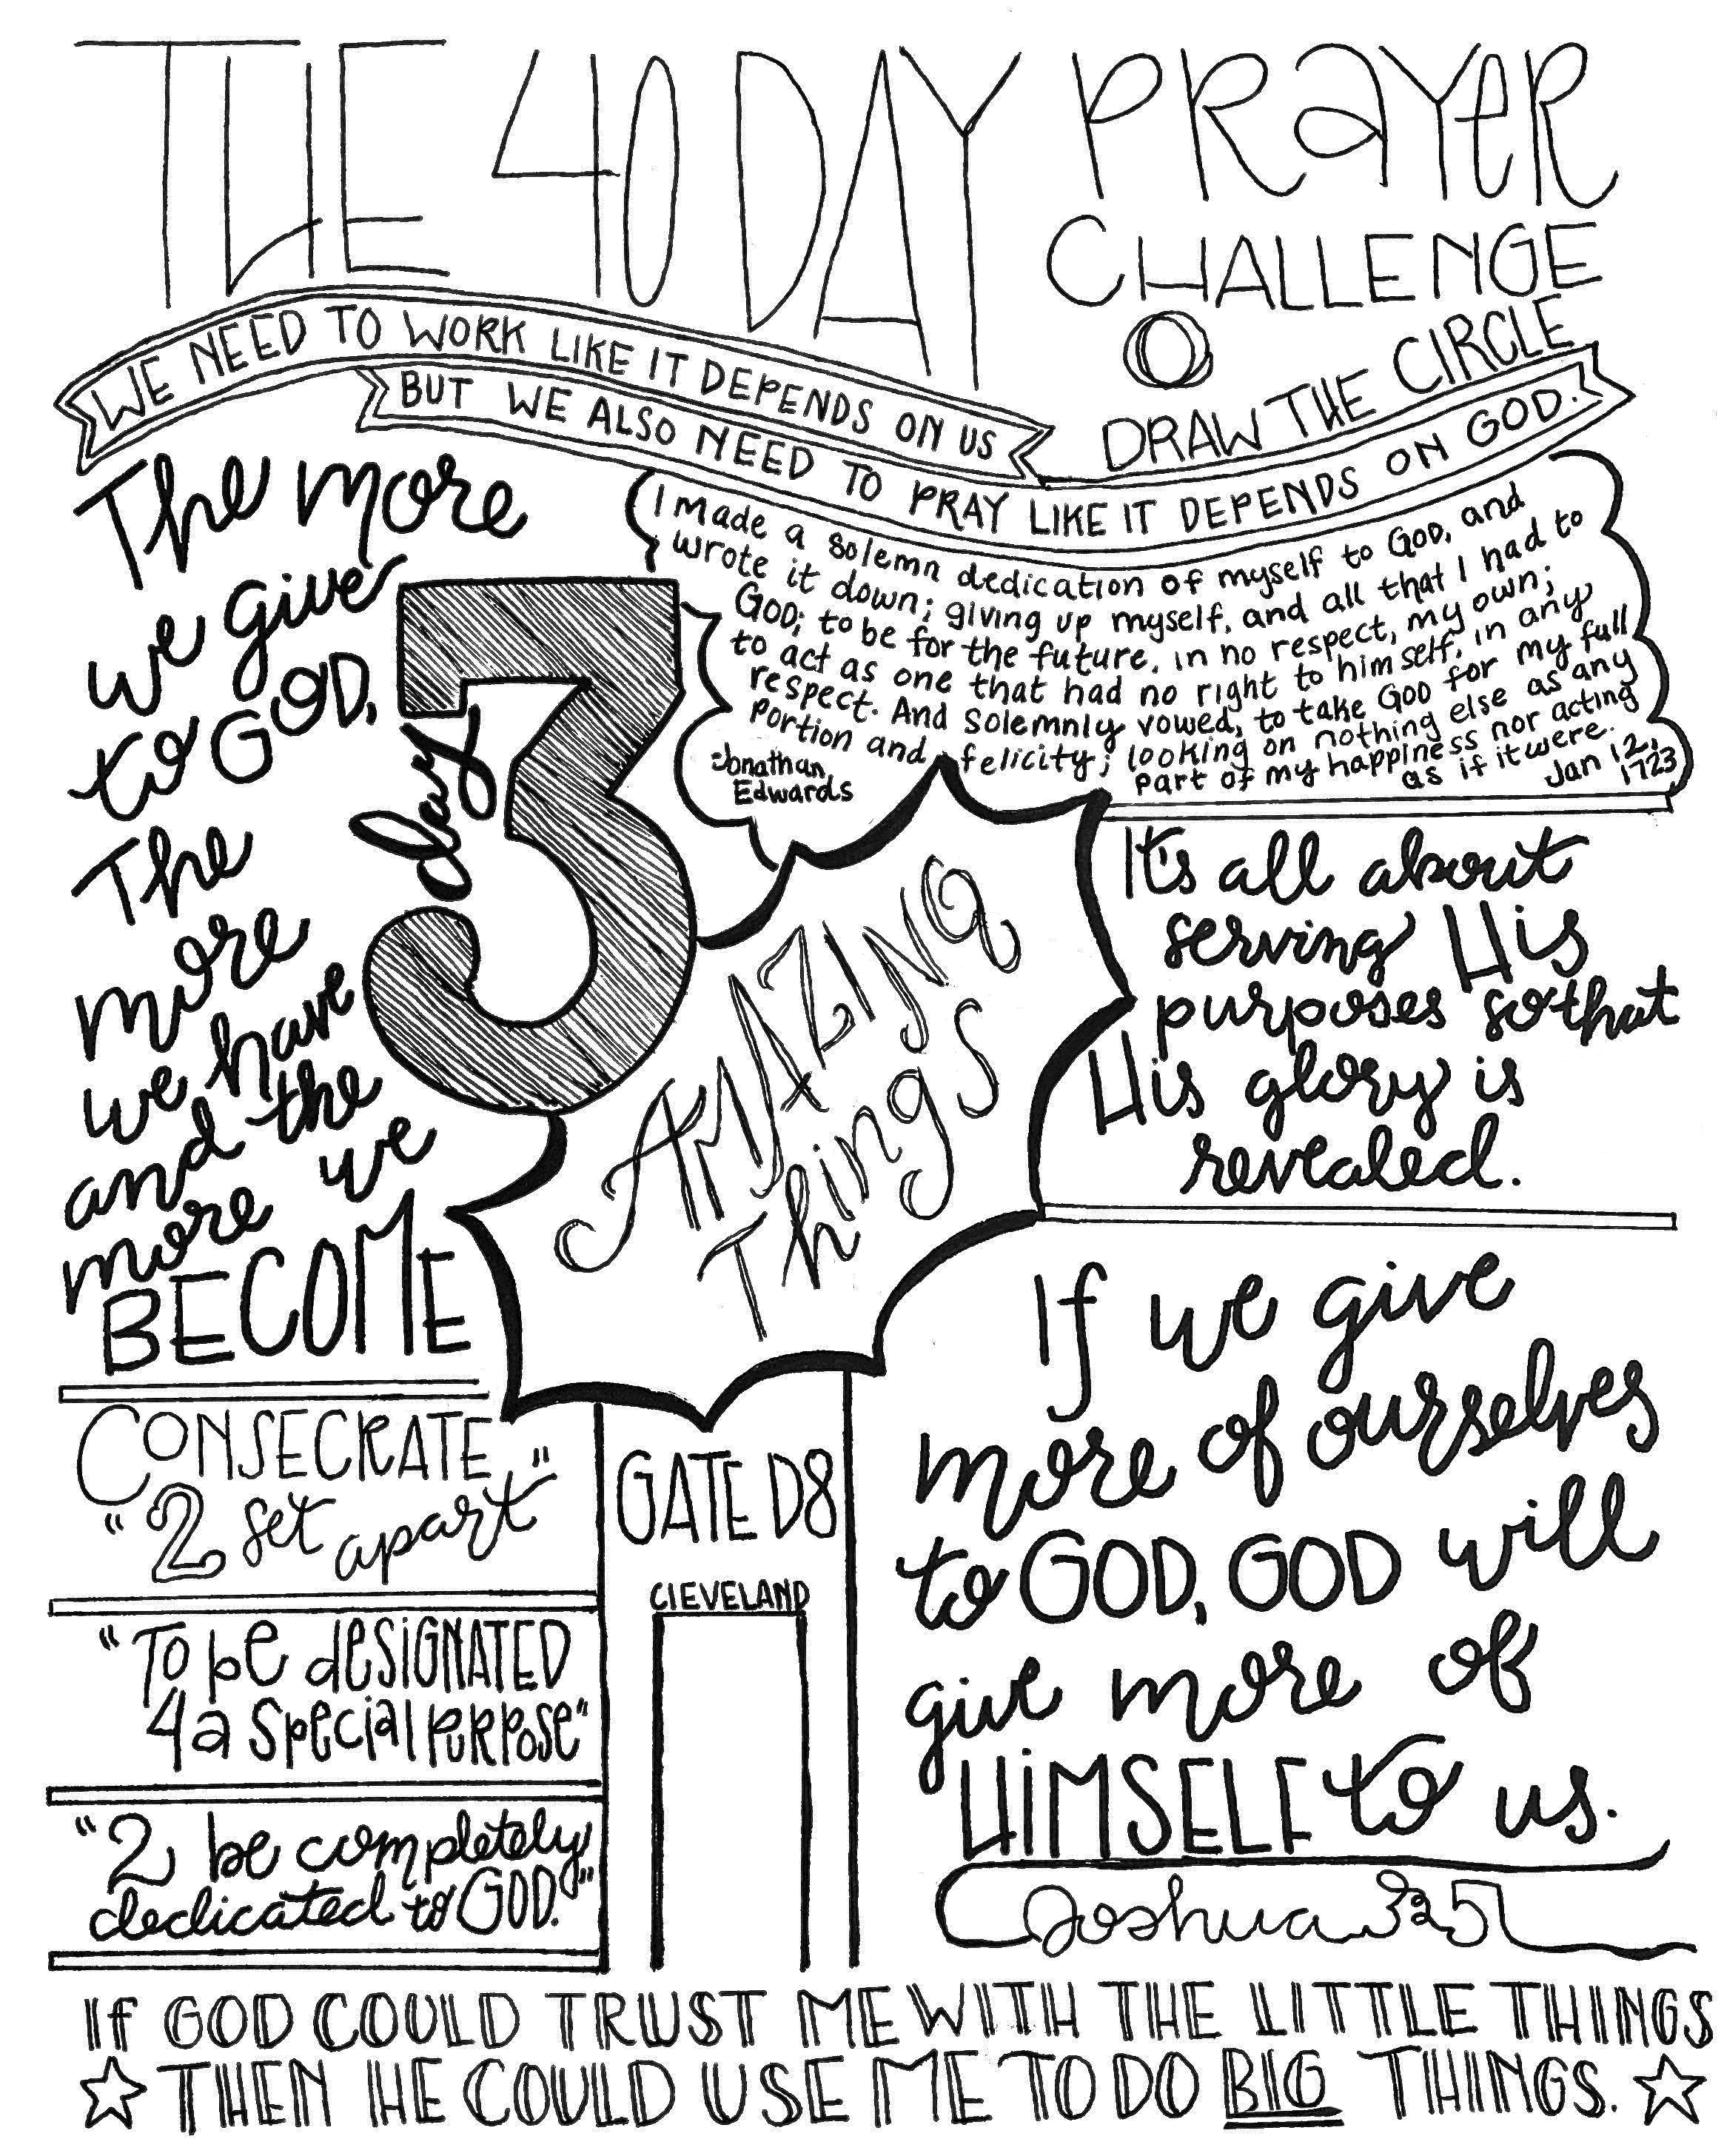 Draw The Circle 40 Day Prayer Challenge Day 3 Livecreative101